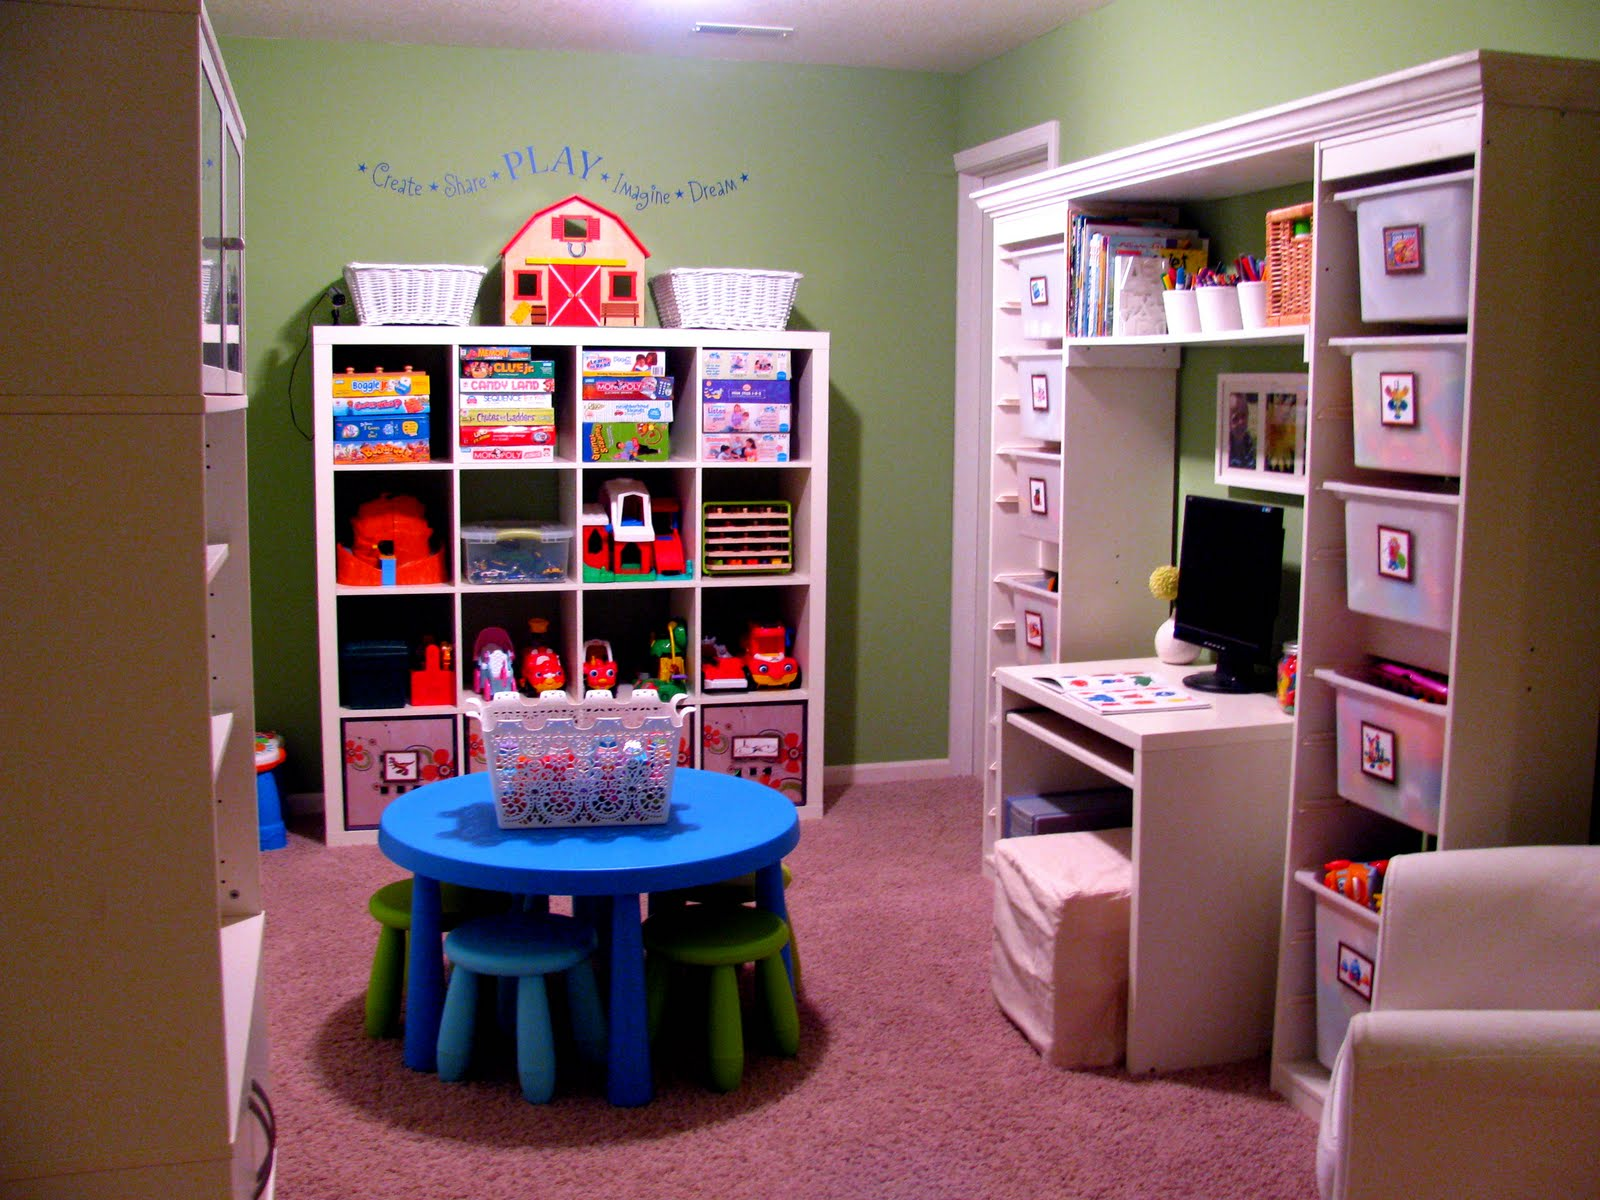 Iheart organizing reader space toy tastic for Room organization